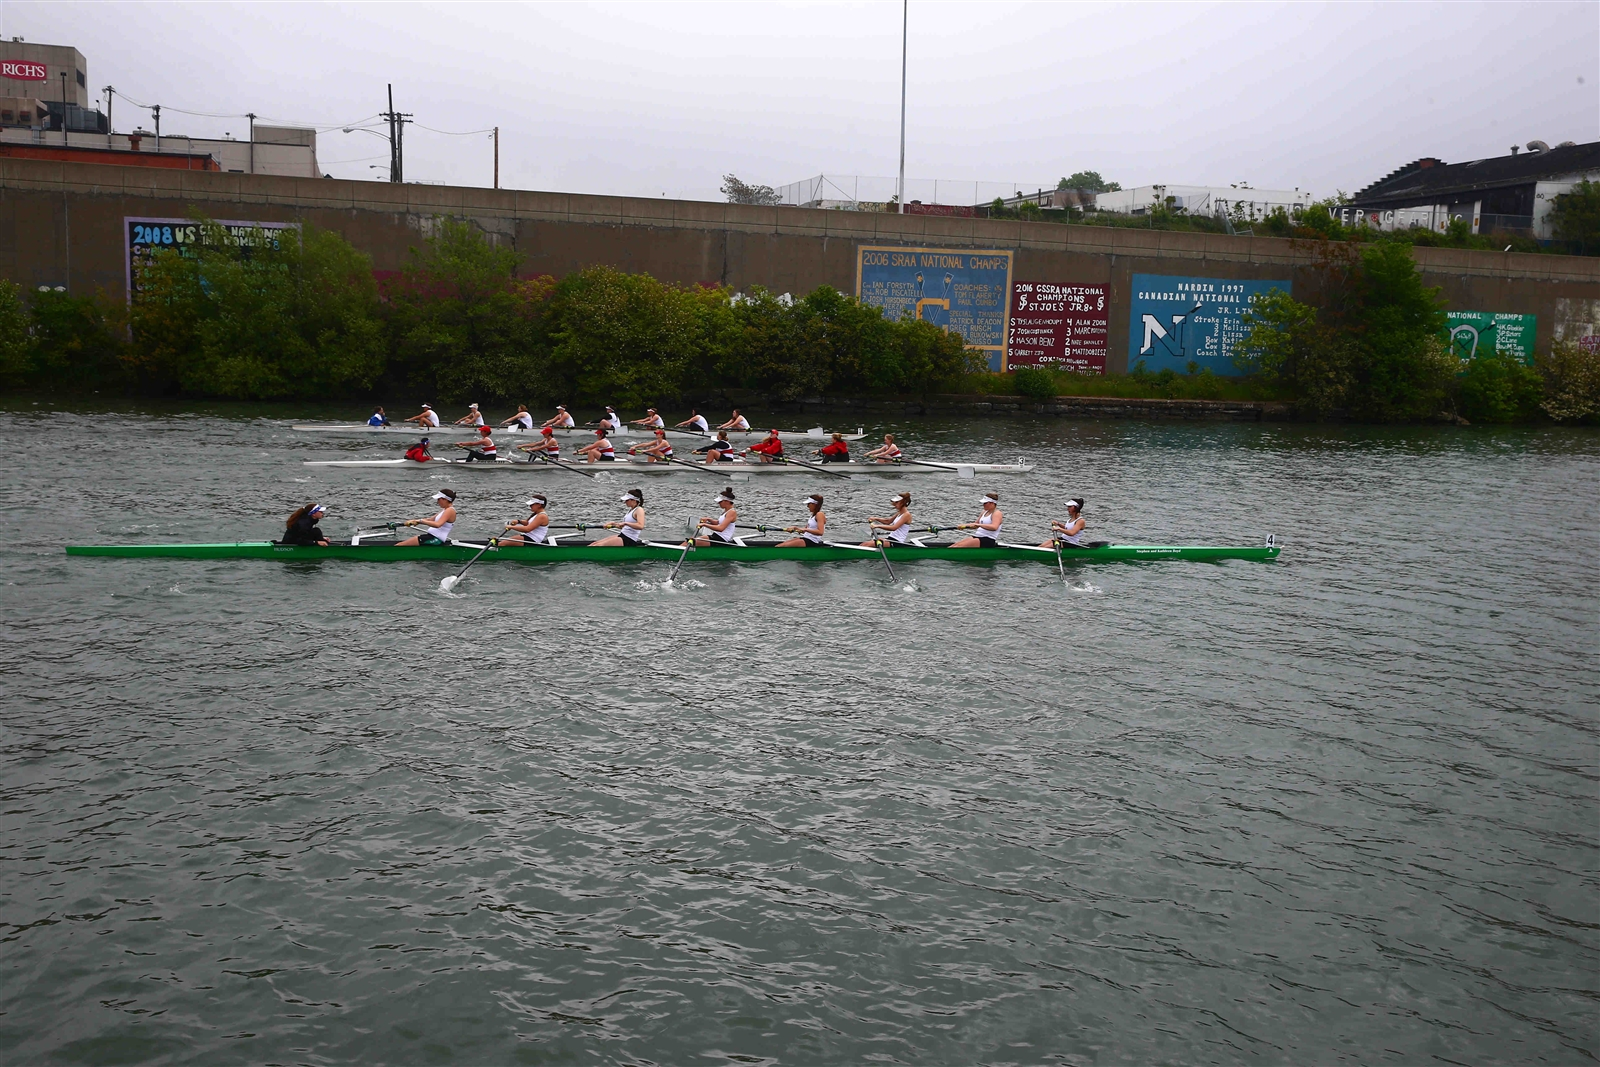 Girls in the JV8 at the start of their race compete in the Fontana All-High Regatta after a fog delay.